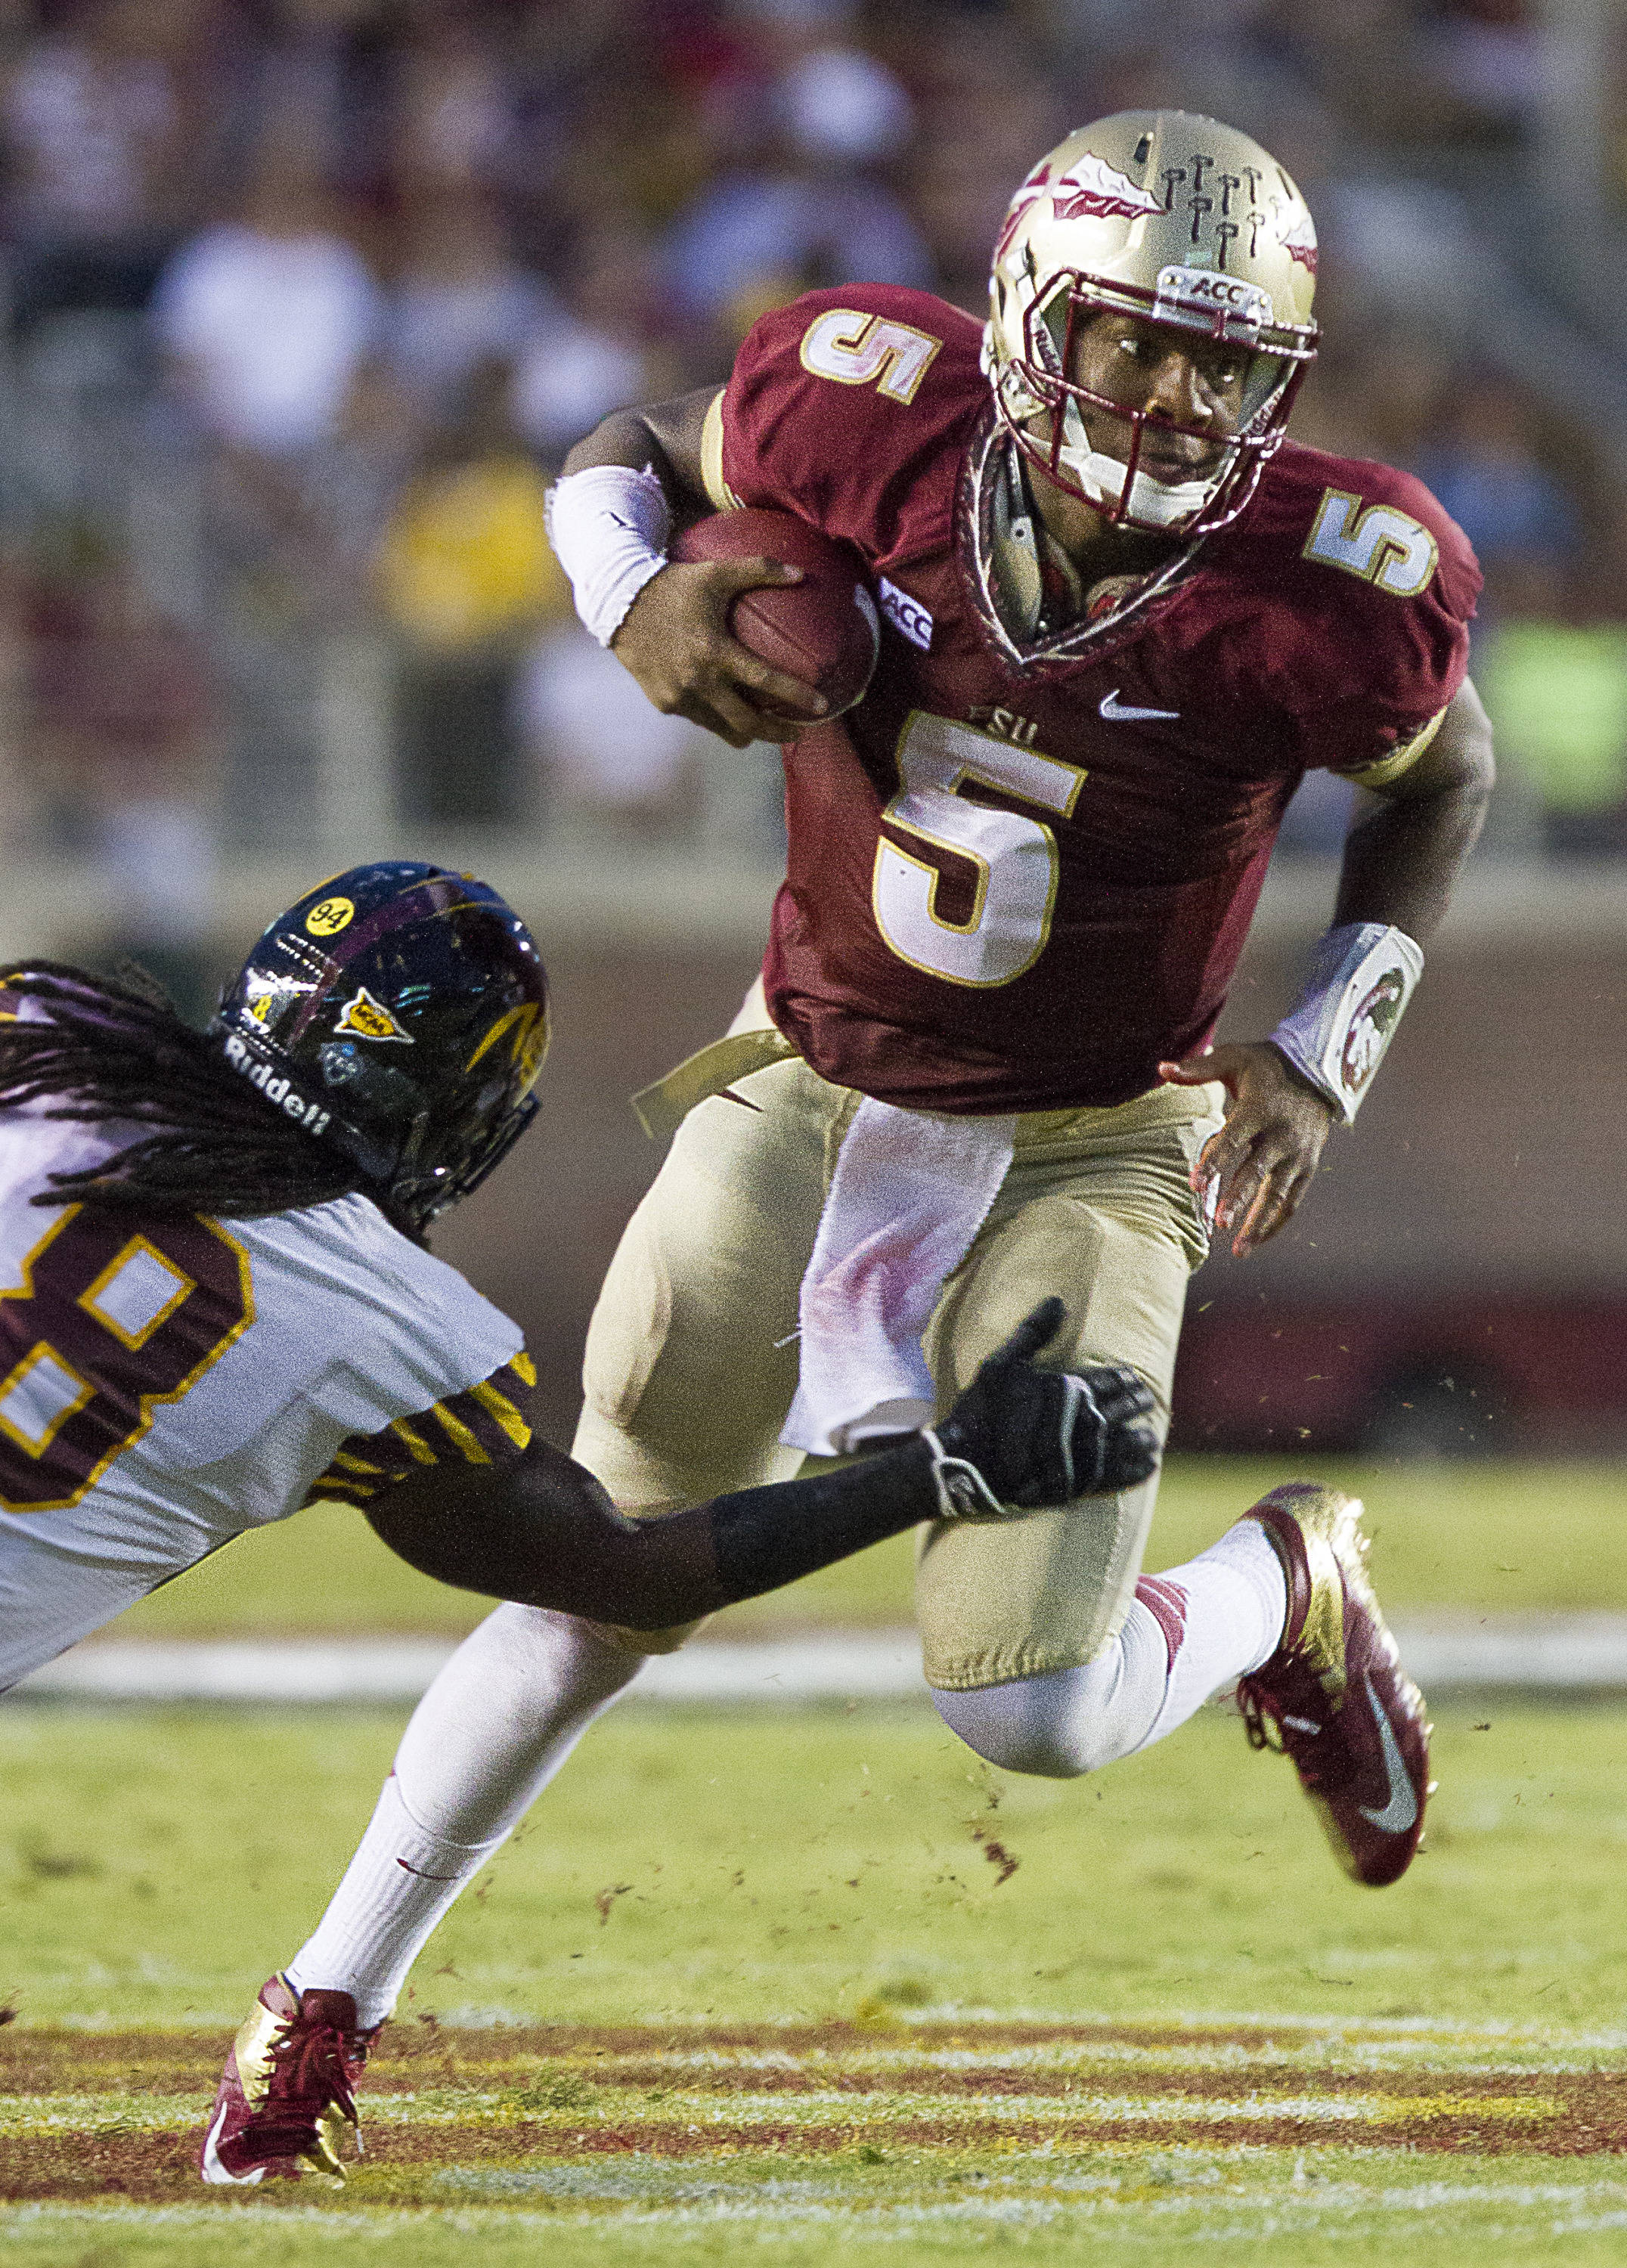 Jameis Winston (5) runs with the ball during FSU Football's 54-6 win over Bethune-Cookman on September 21, 2013 in Tallahassee, Fla